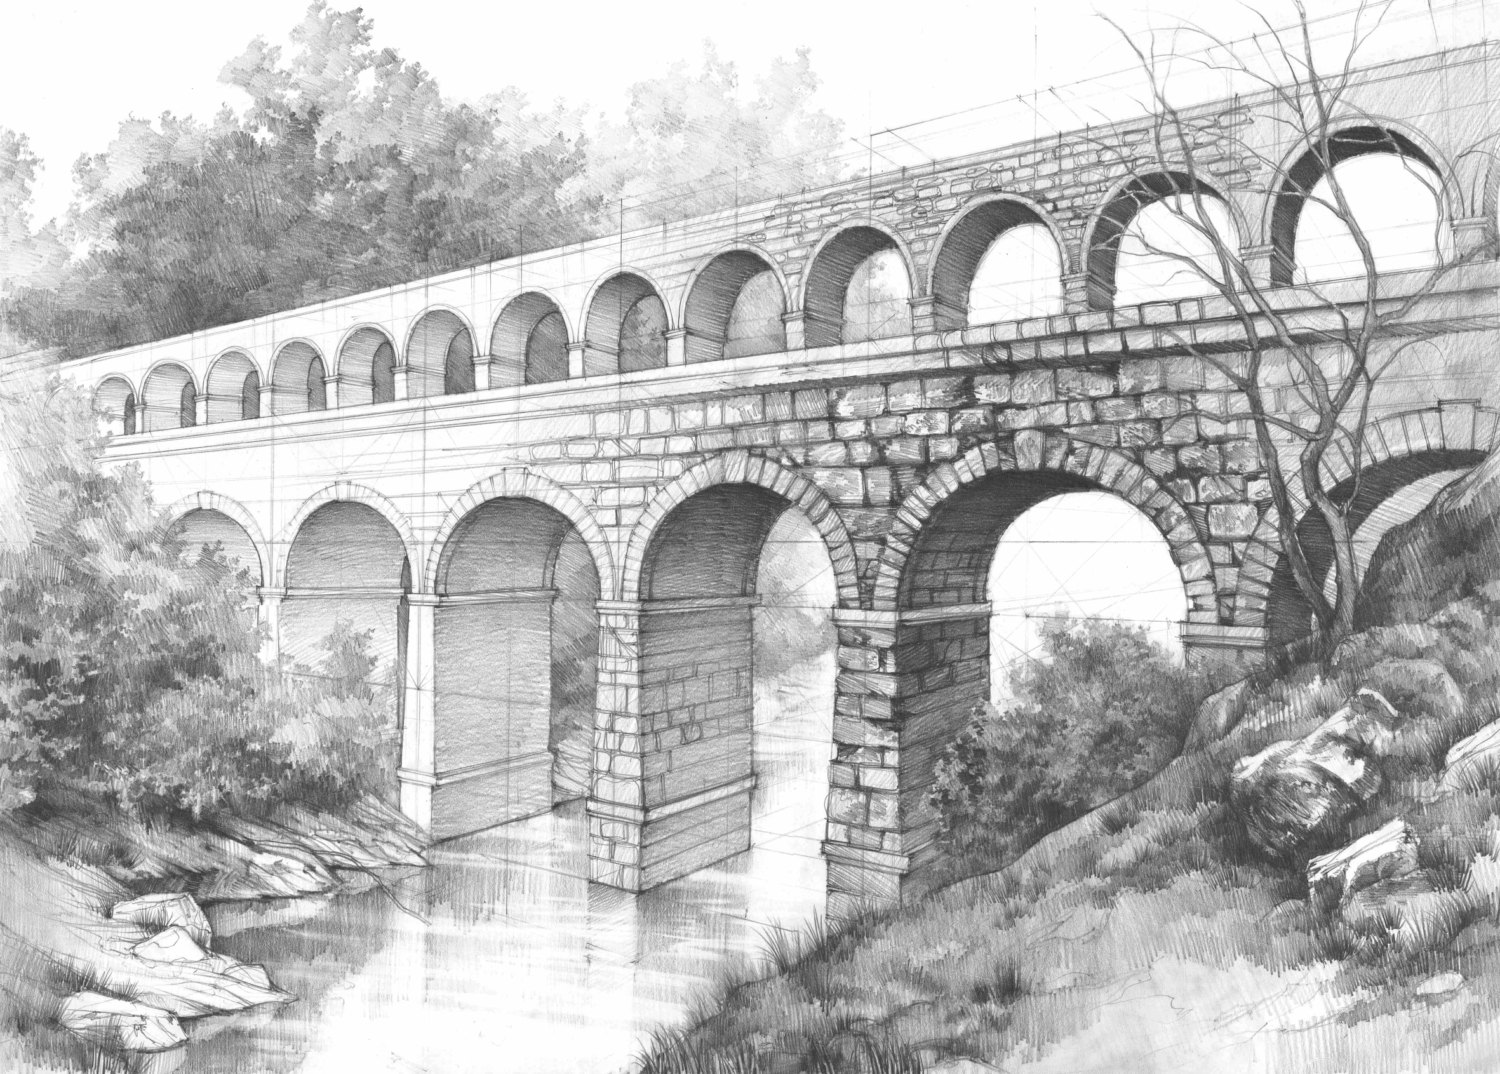 Drawn bridge double leaf Aqueduct pencil Kmiecik drawing bridge